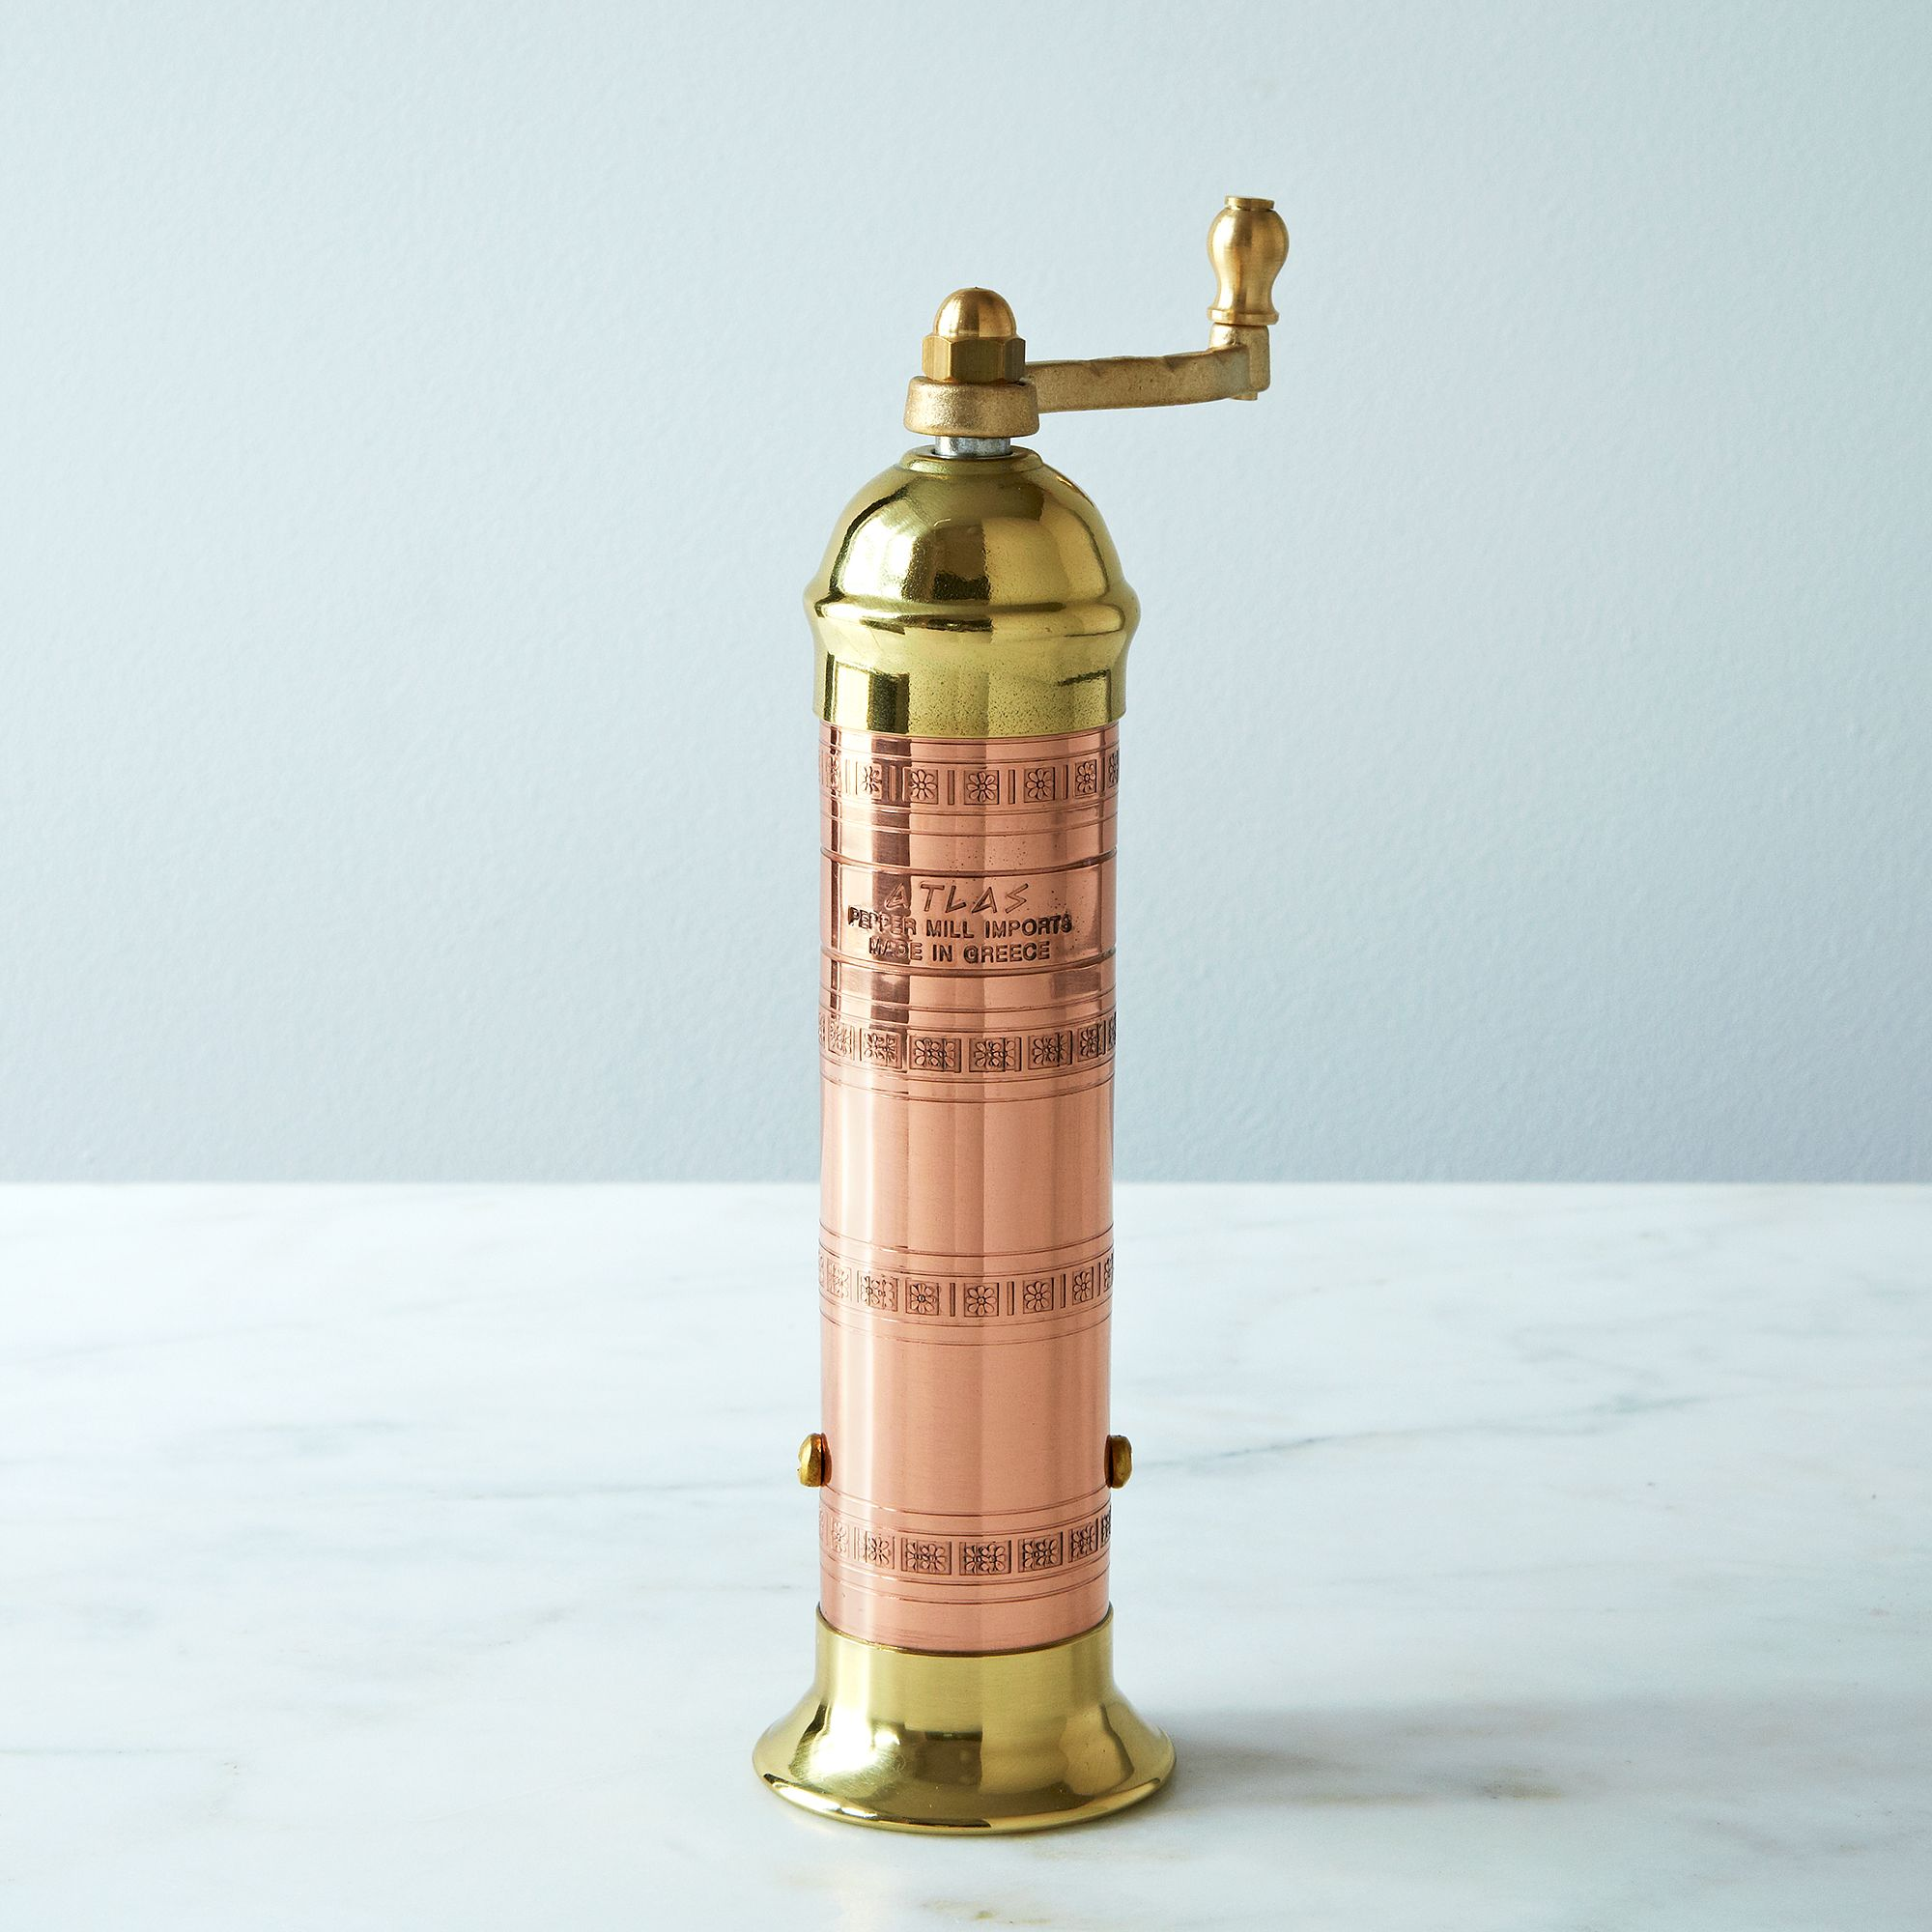 18c68c9d 9cdb 492e a7a6 1379095f6dc7  2013 0822 blackberry farm copper and brass pepper mill james ransom 001